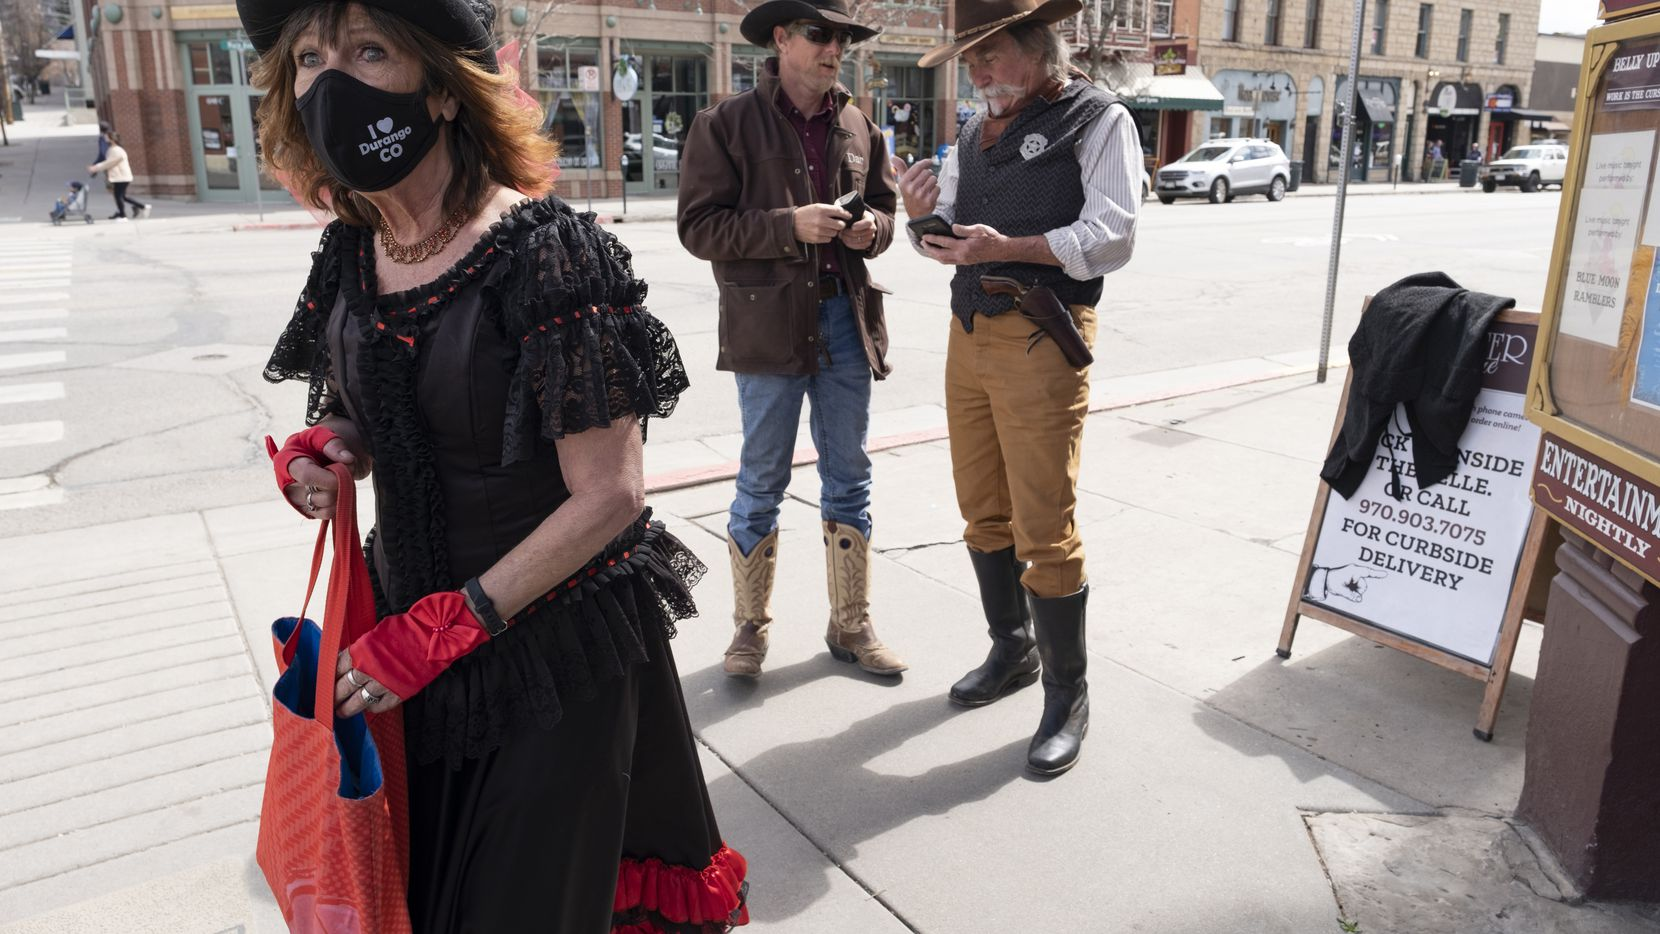 Dressed in Old West attire, Cathy Roberts (left) and Scott Perez (right) mix it up with locals and visitors while on a mission in Durango, Colo.: to encourage mask use during the pandemic. They give out free masks and sometimes stand for a quick photo opportunity with tourists.